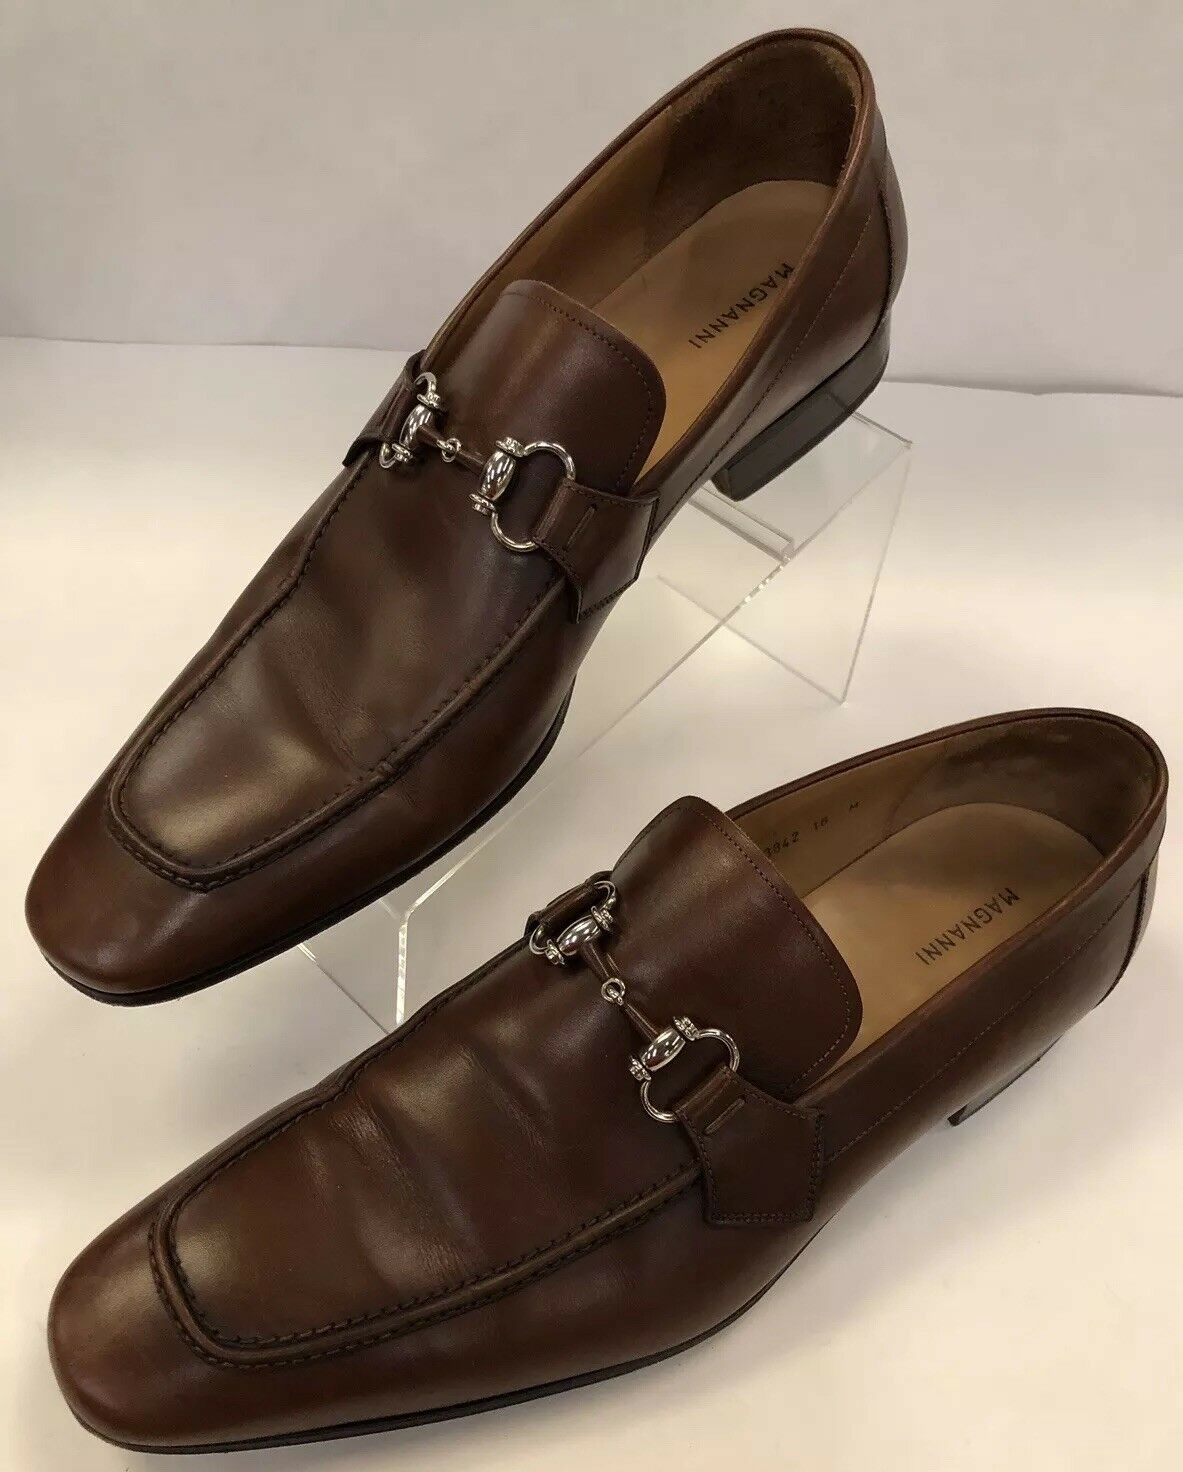 Magnanni 13842 16 M Brown Leather Horse Bit Dress Loafers Moc Toe Slip On shoes